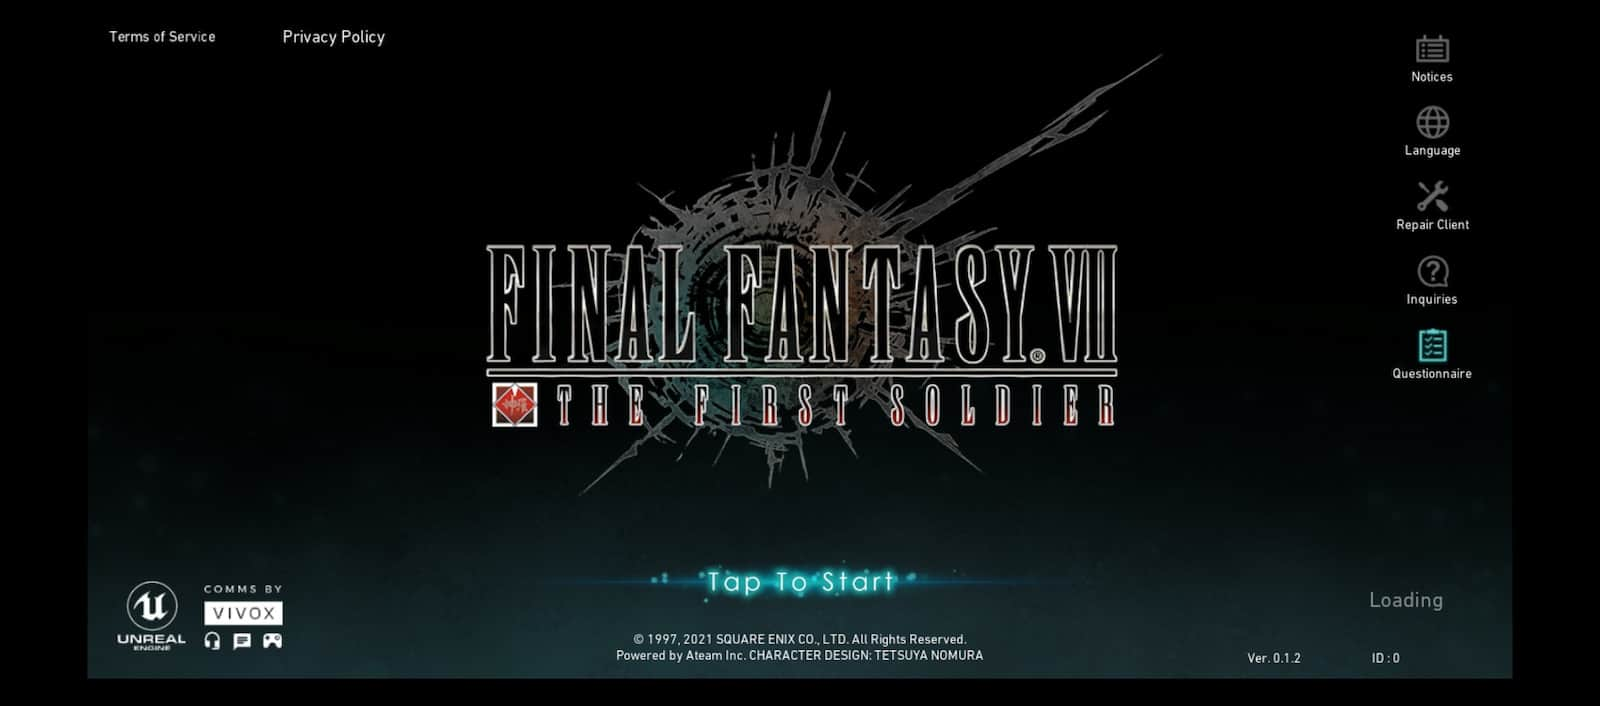 Final Fantasy VII First Soldier Closed Beta 1